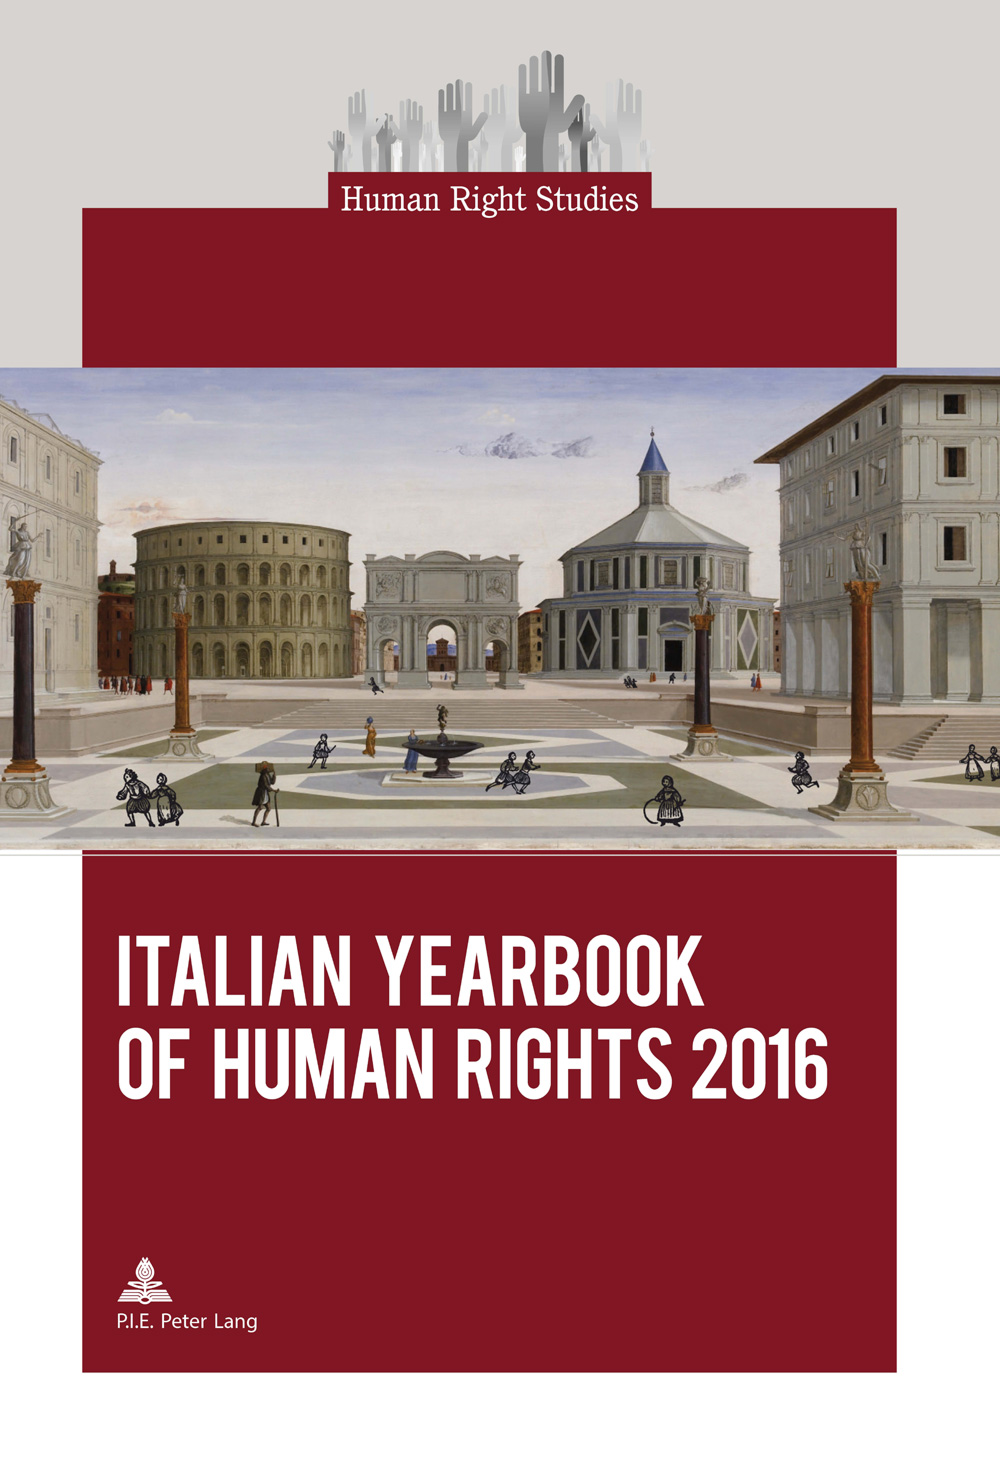 Cover dello Italian Yearbook of Human Rights 2016